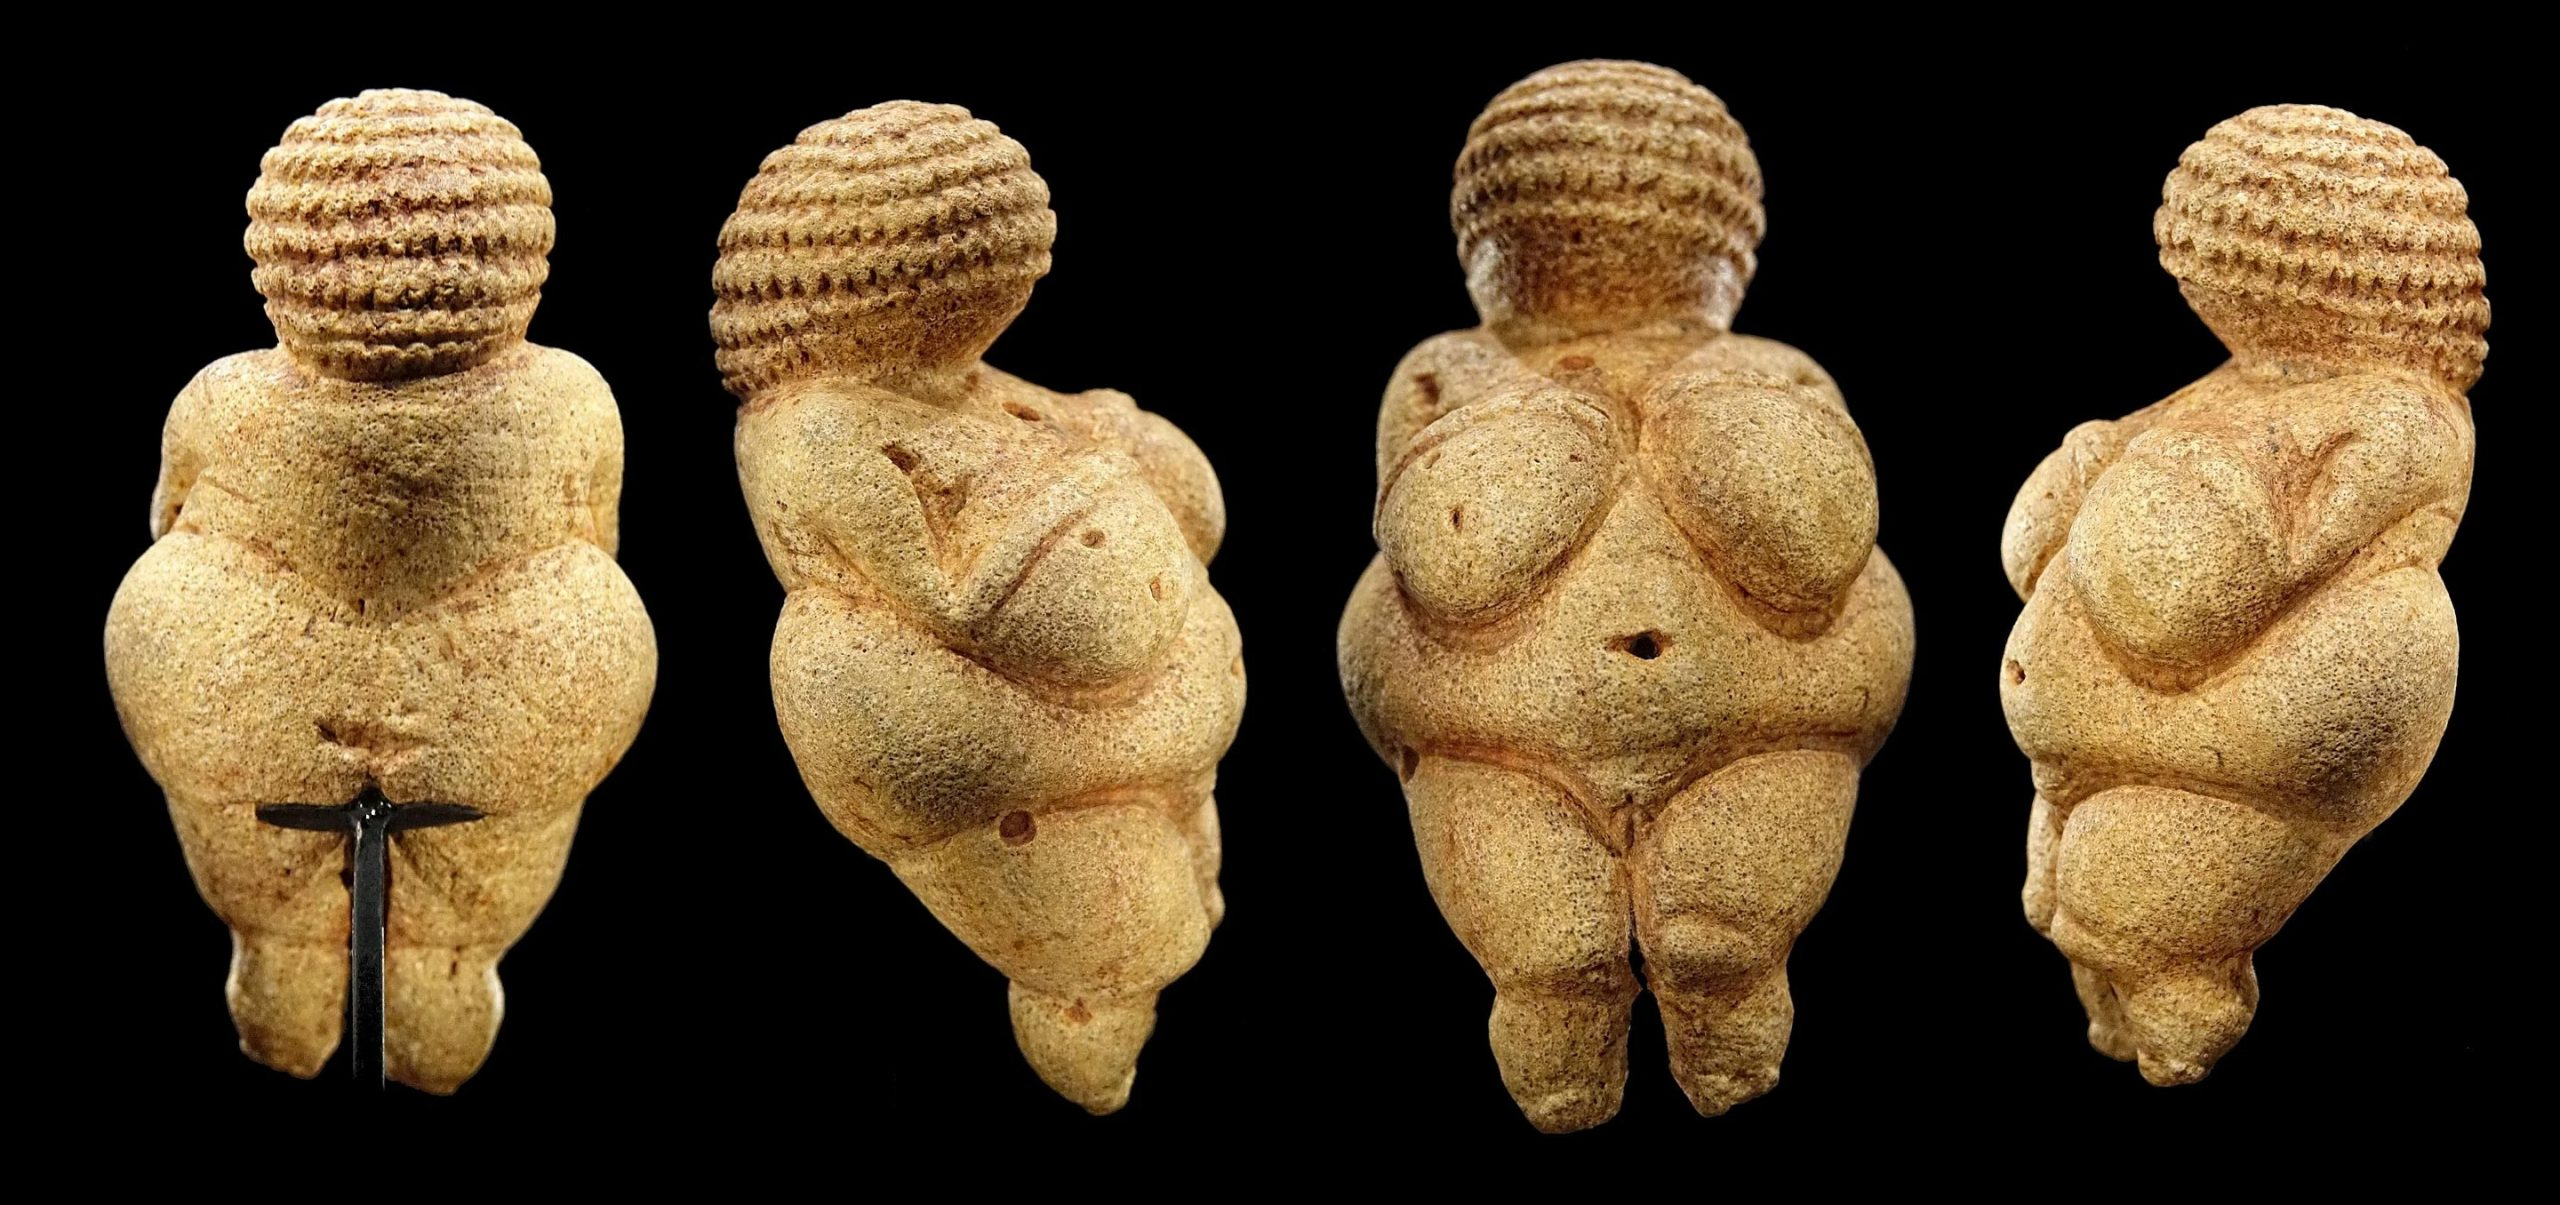 """Humanity's Oldest Sculptures: Researchers New Theory on """"Venus"""" Figurines May Have Solved Mystery - SciTechDaily"""